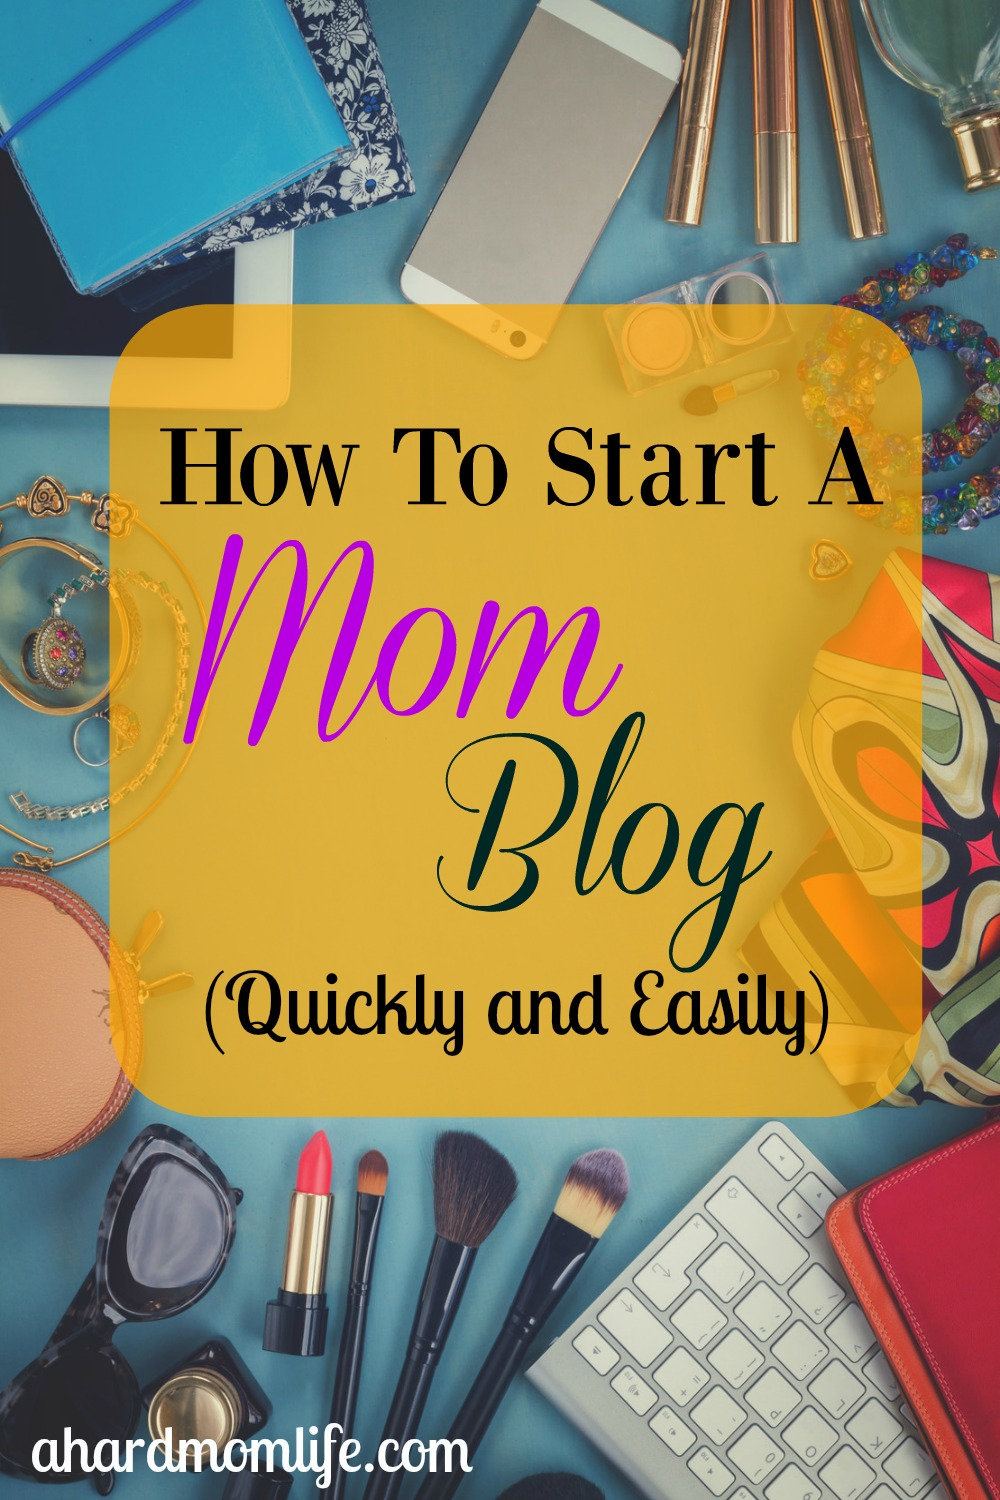 Are you interested in starting your own blog but not sure how? These step-by-step instructions will help you create your mom blog quickly and easily.